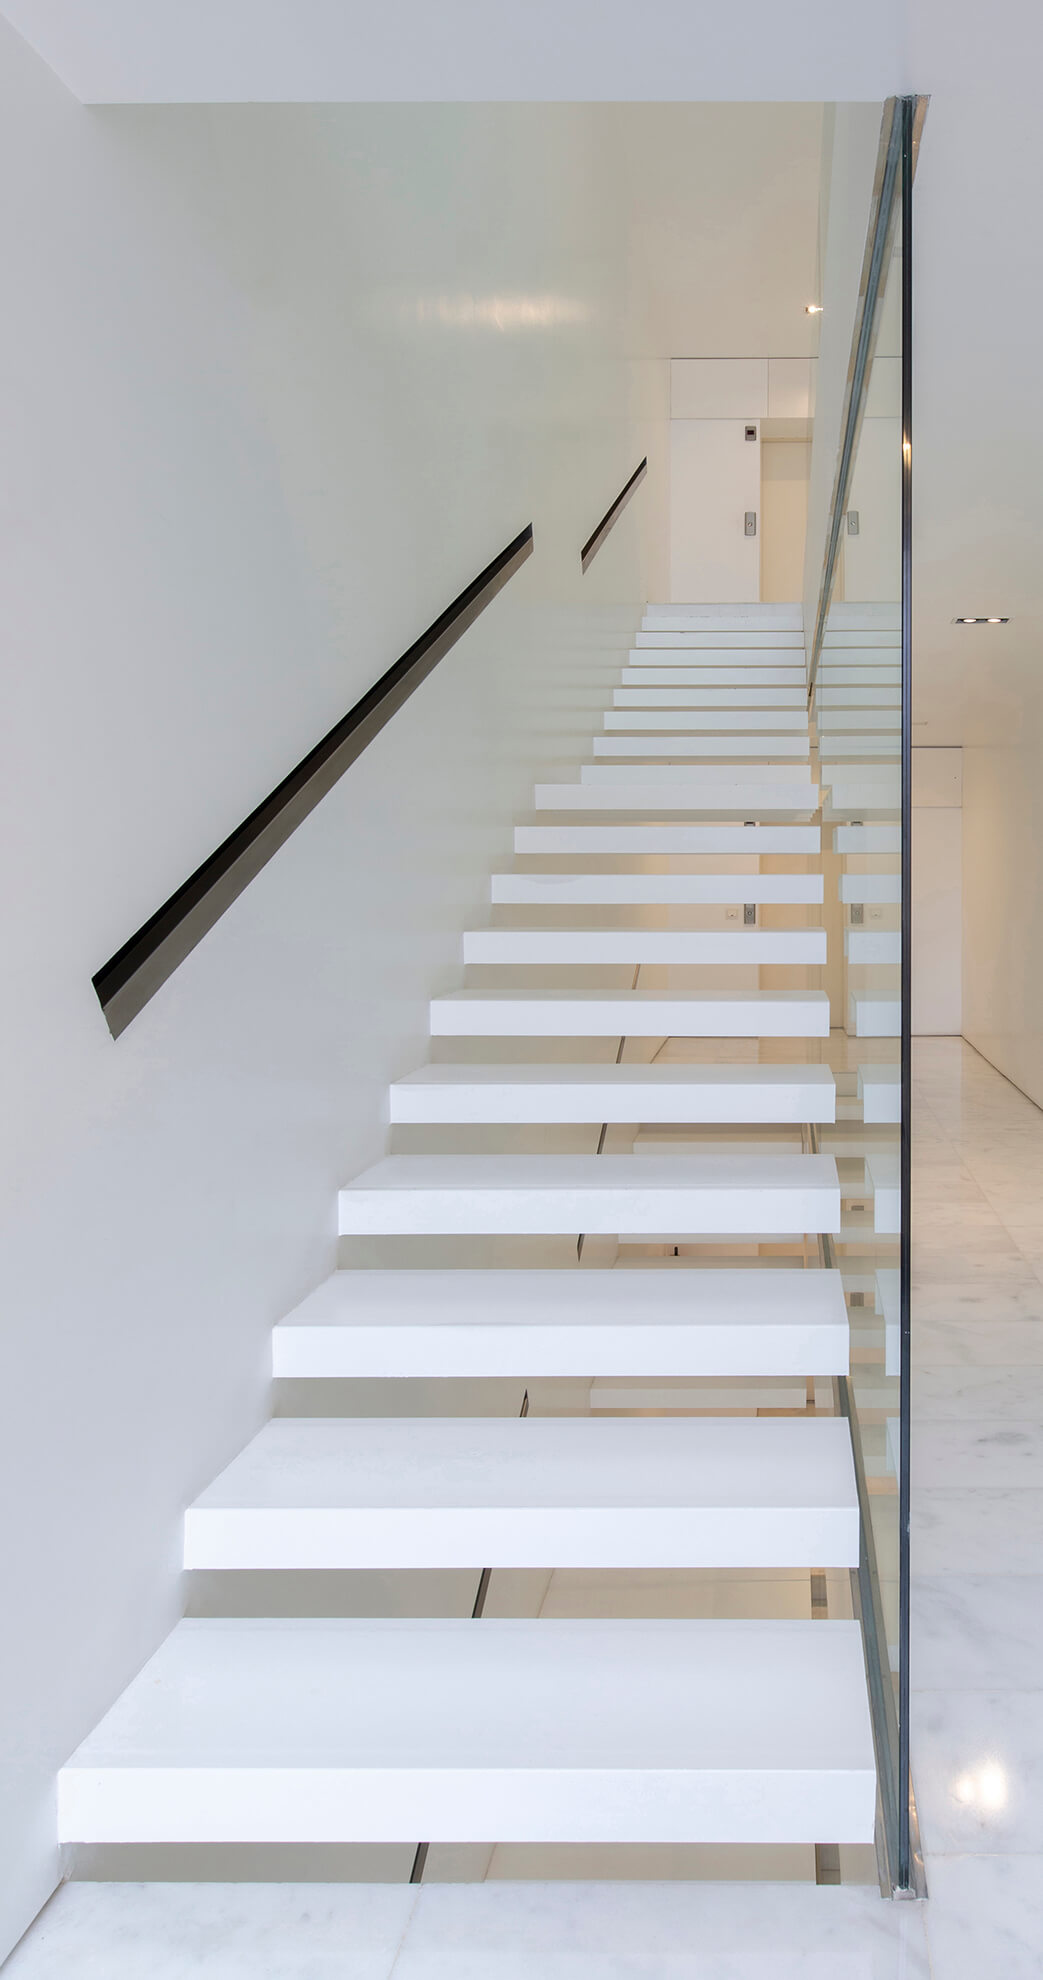 Detail view of the stairs of the residence